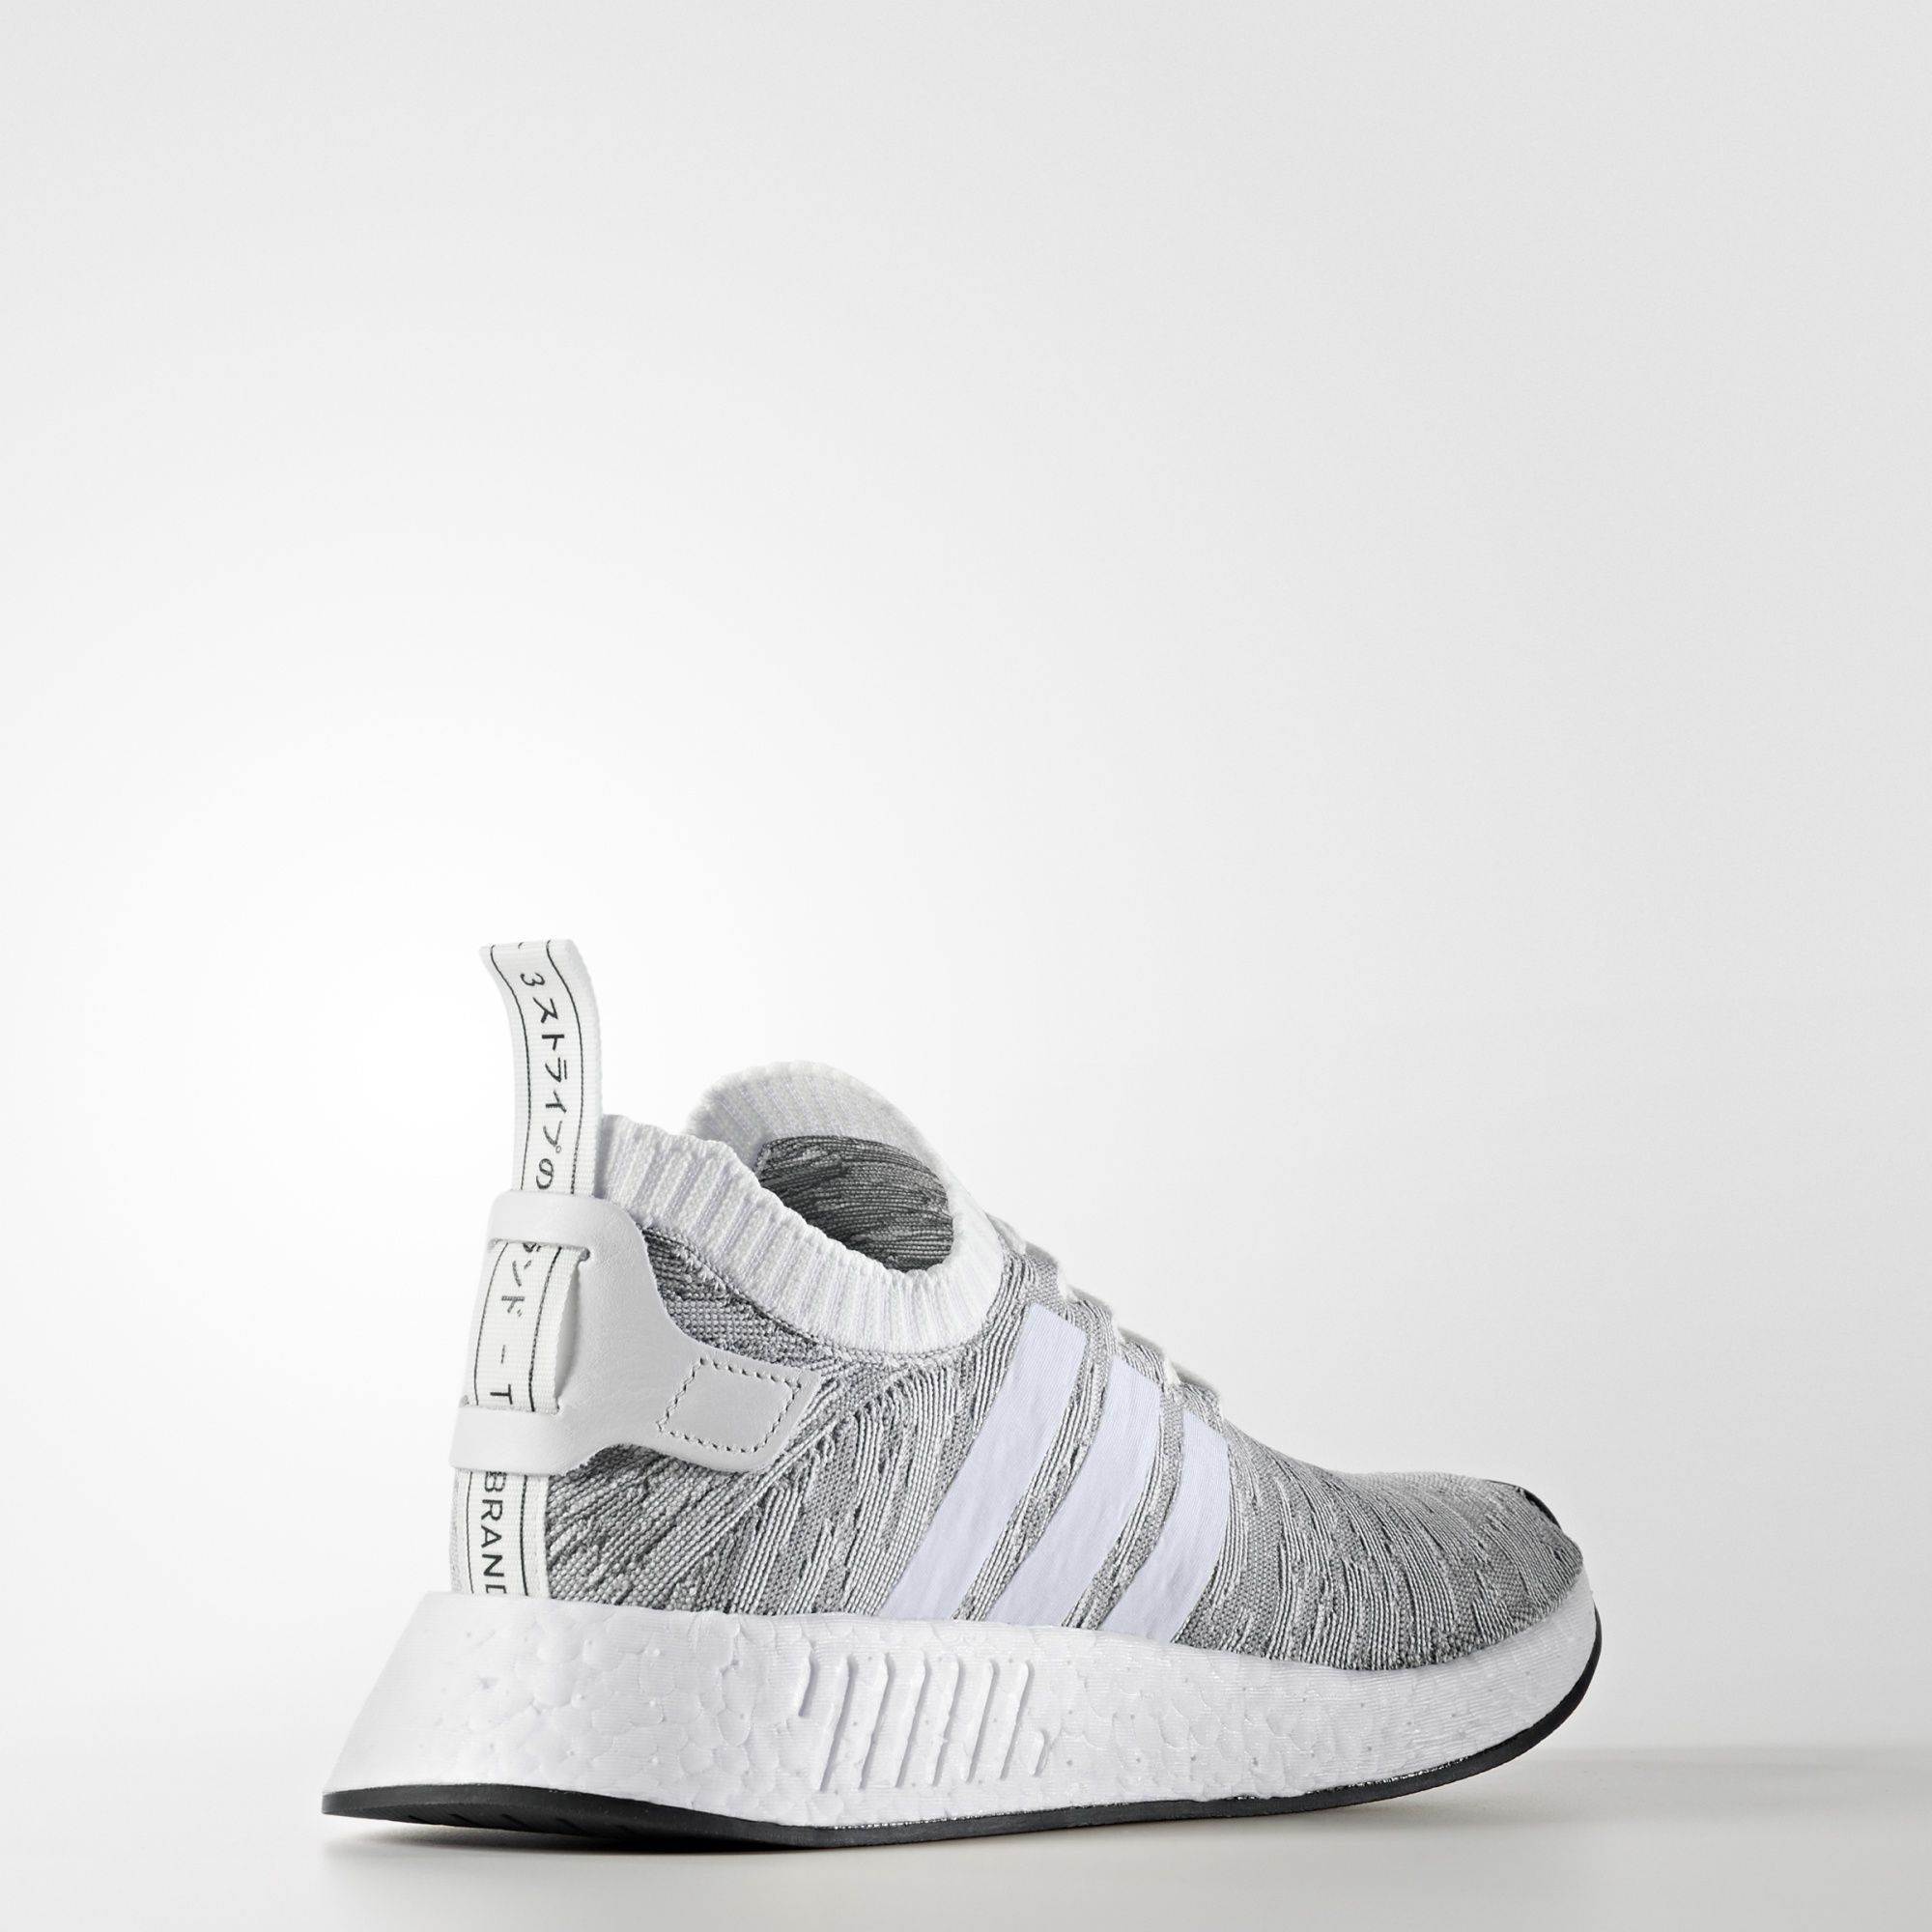 adidas NMD R2 Primeknit White Black BY9410 2